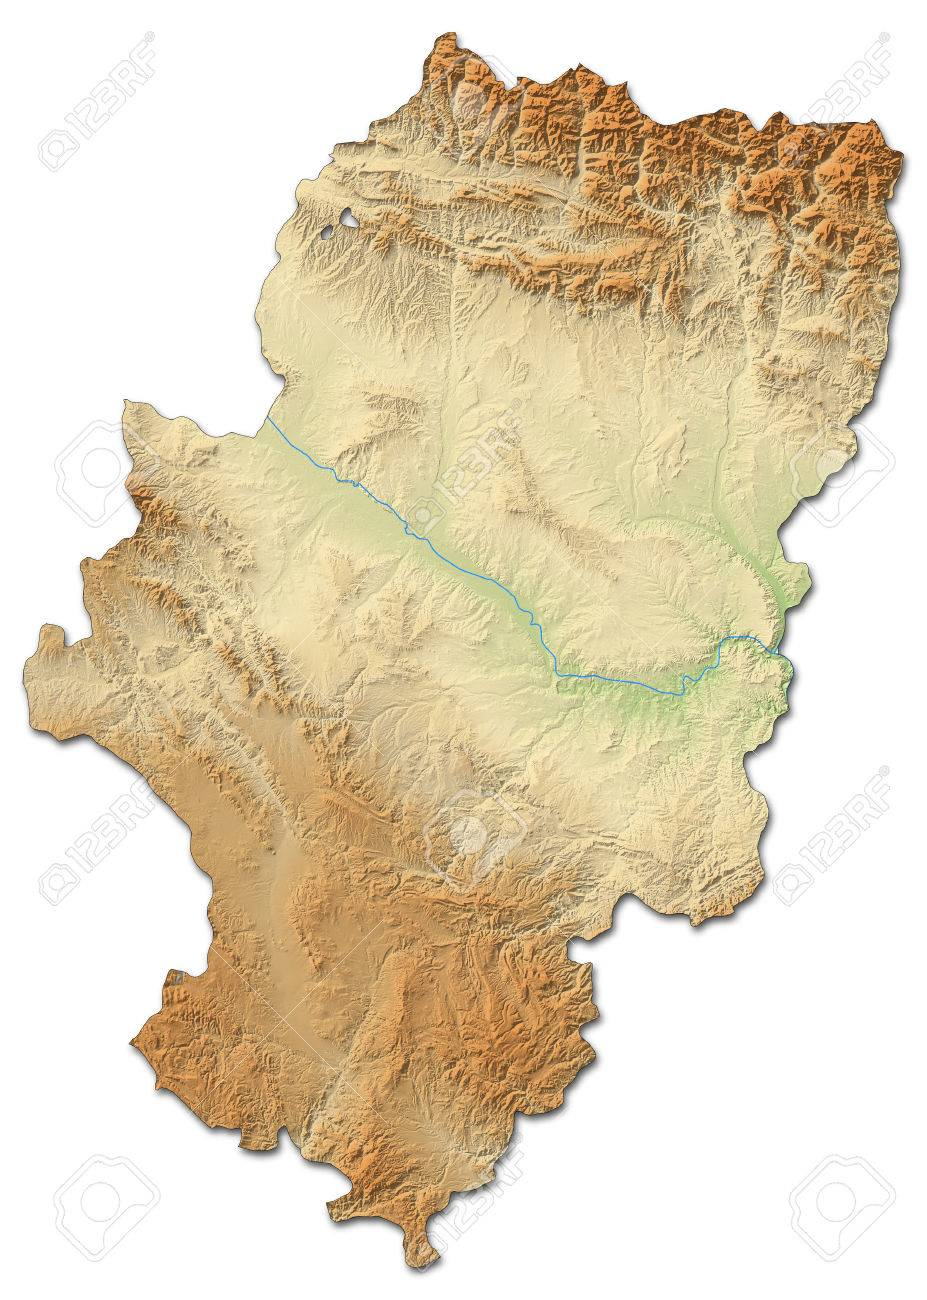 Relief Map Of Aragon A Province Of Spain With Shaded Relief Stock